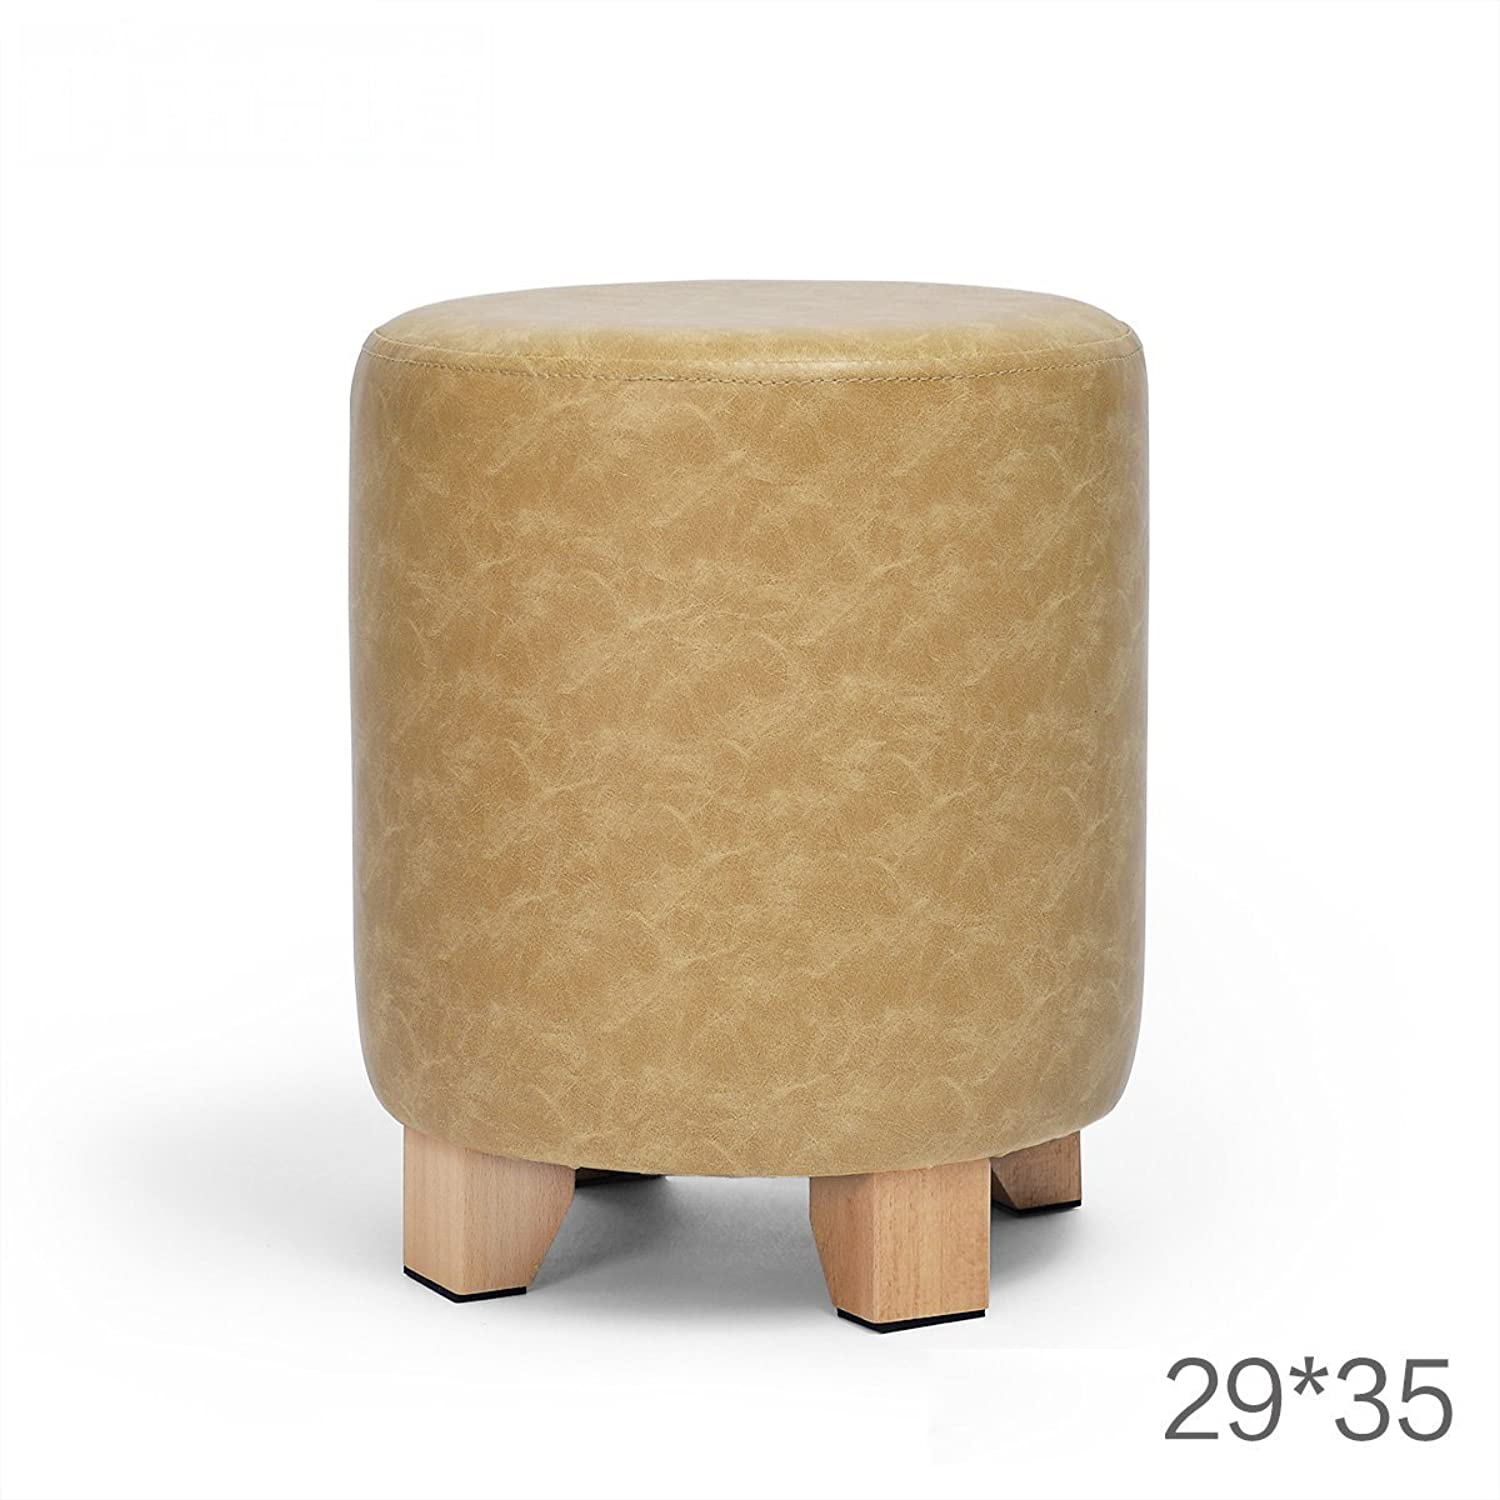 SMC Stool Solid Wood Leather Round European Style Simple Ideas Lightweight Comfortable Sofa Living Room Bedroom Stools shoes Change Stool (color   D)